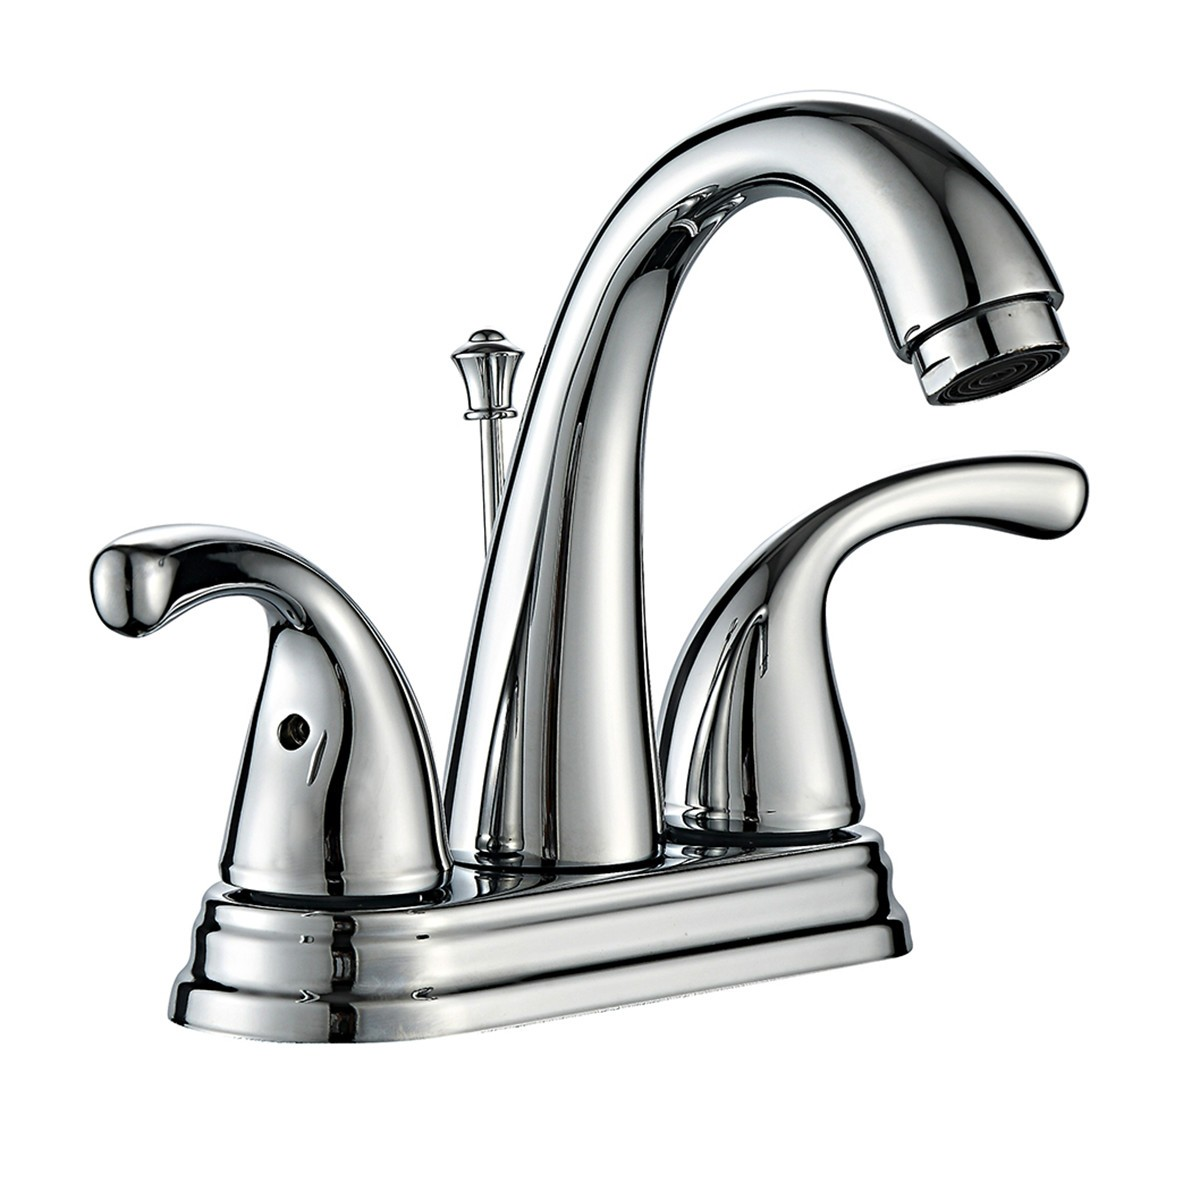 4 Inch Two Handle Centerset Lavatory Faucet